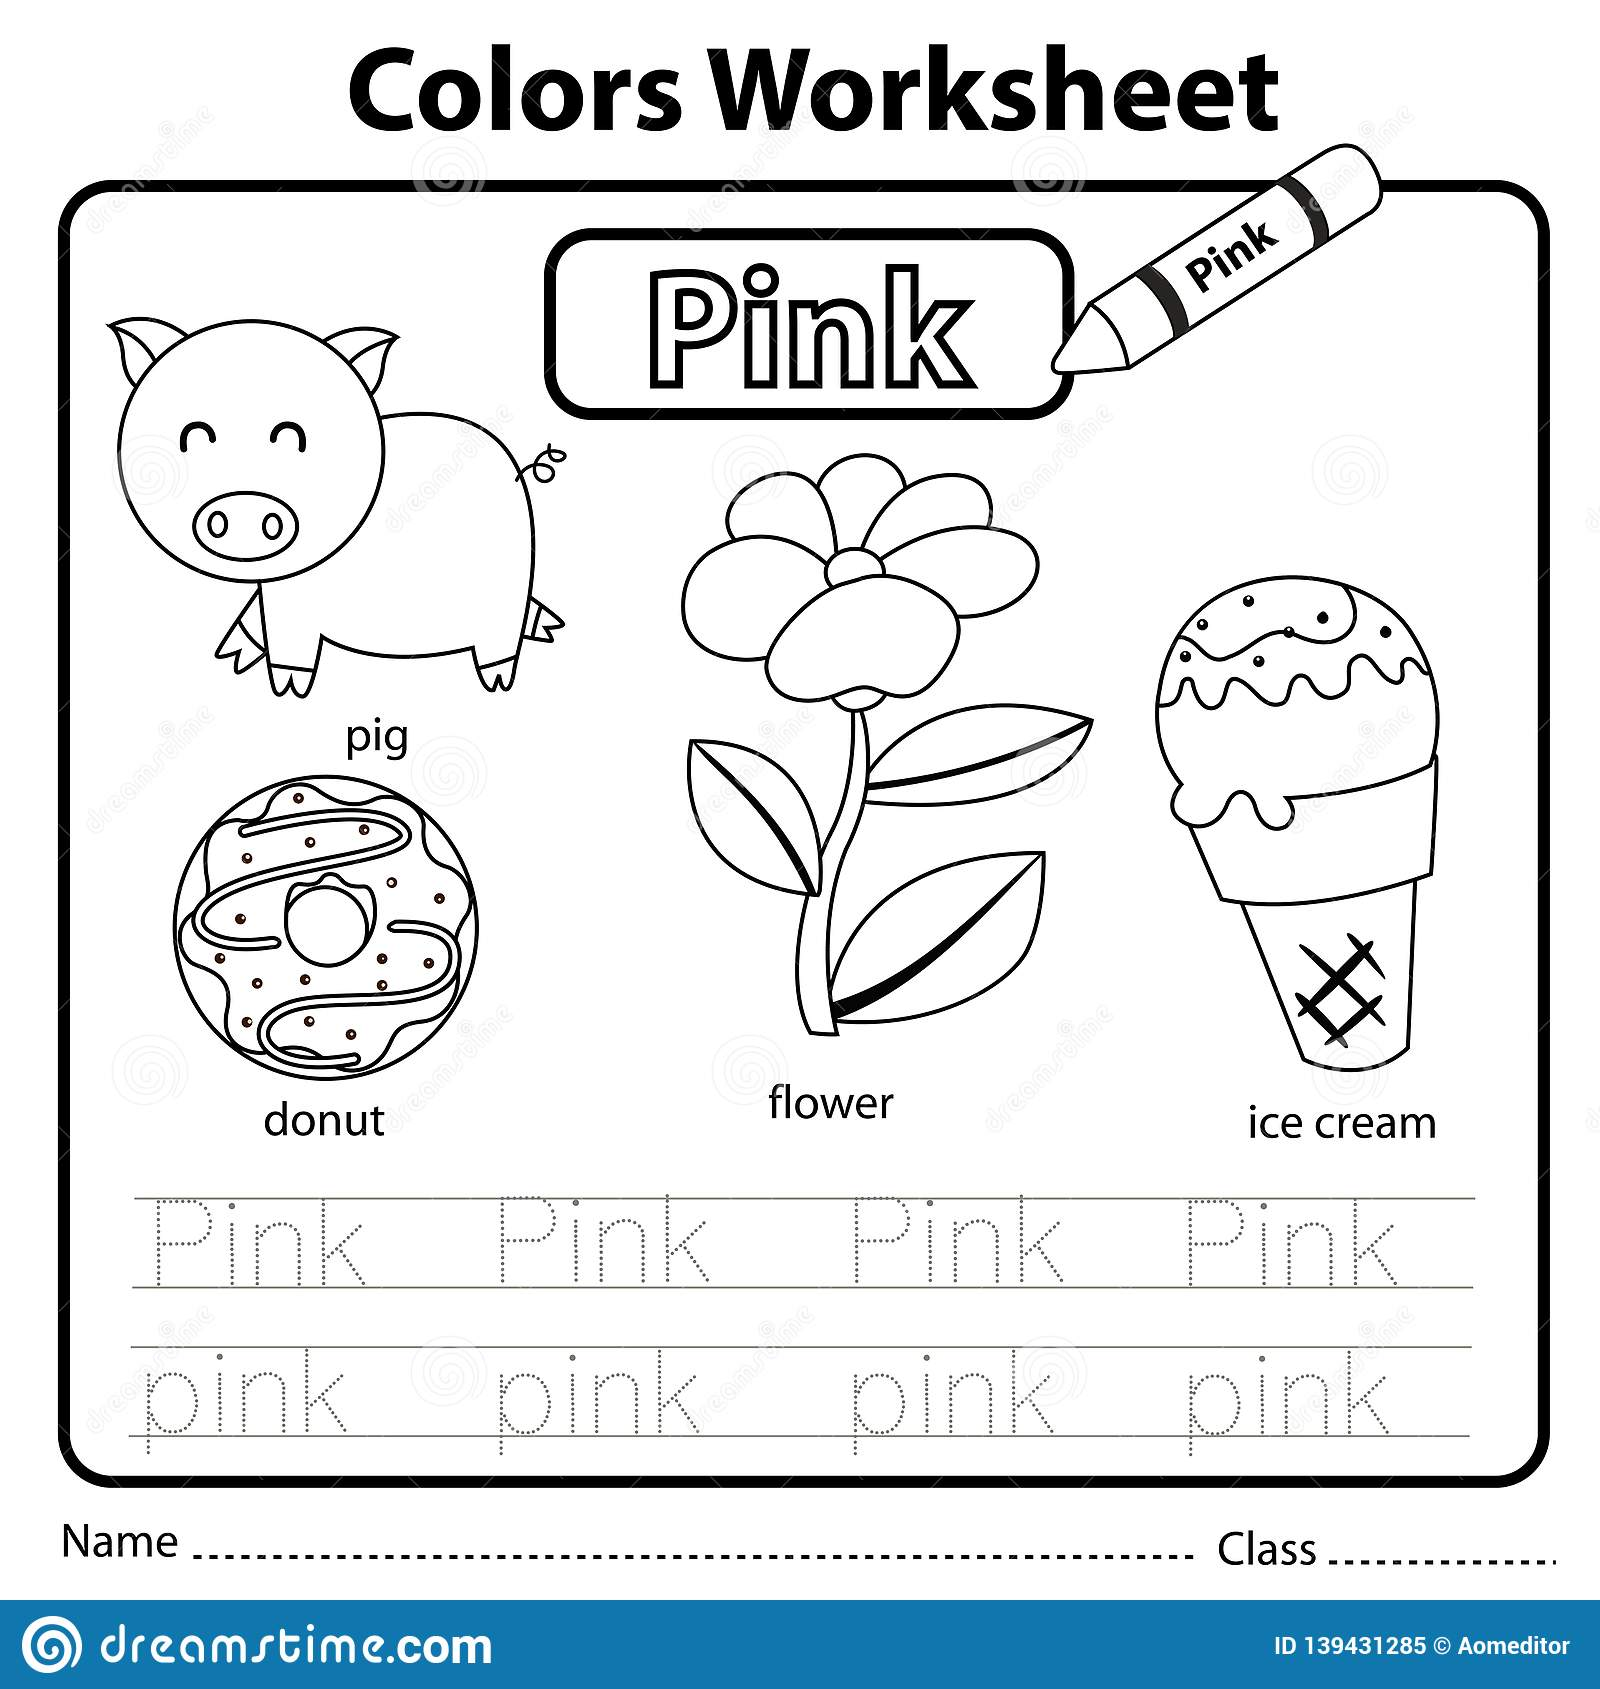 Illustrator Of Color Worksheet Pink Stock Vector